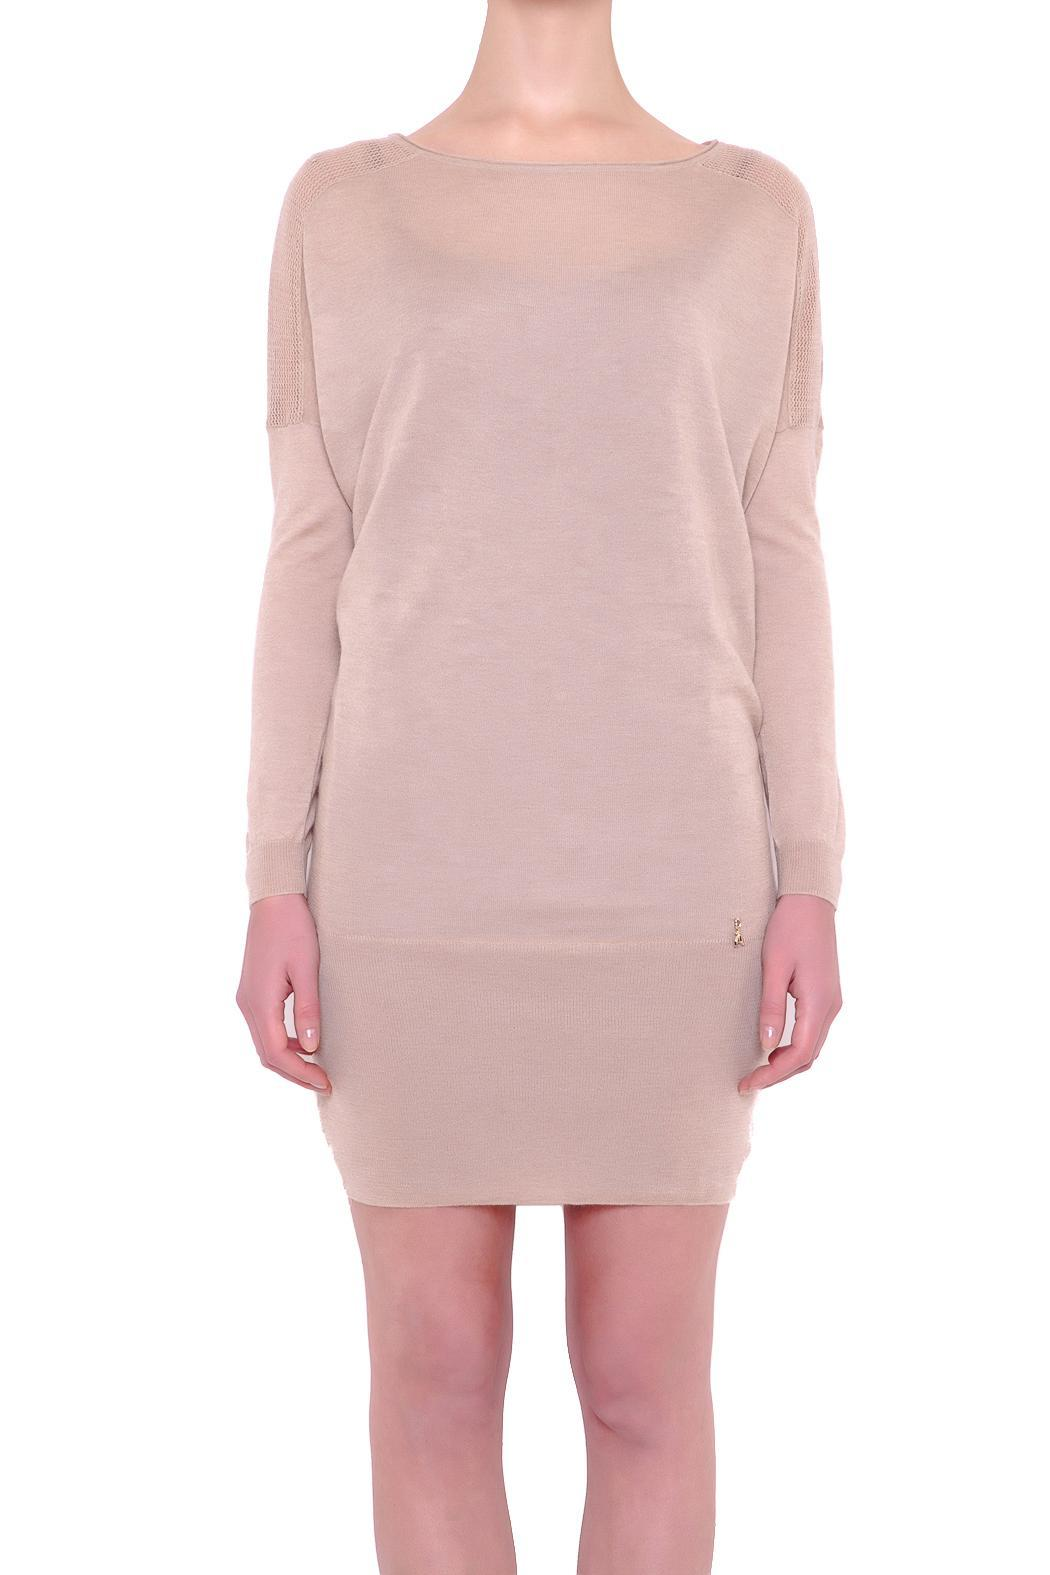 Patrizia pepe cashmere blend sweater dress from richmond for Sweater over wedding dress